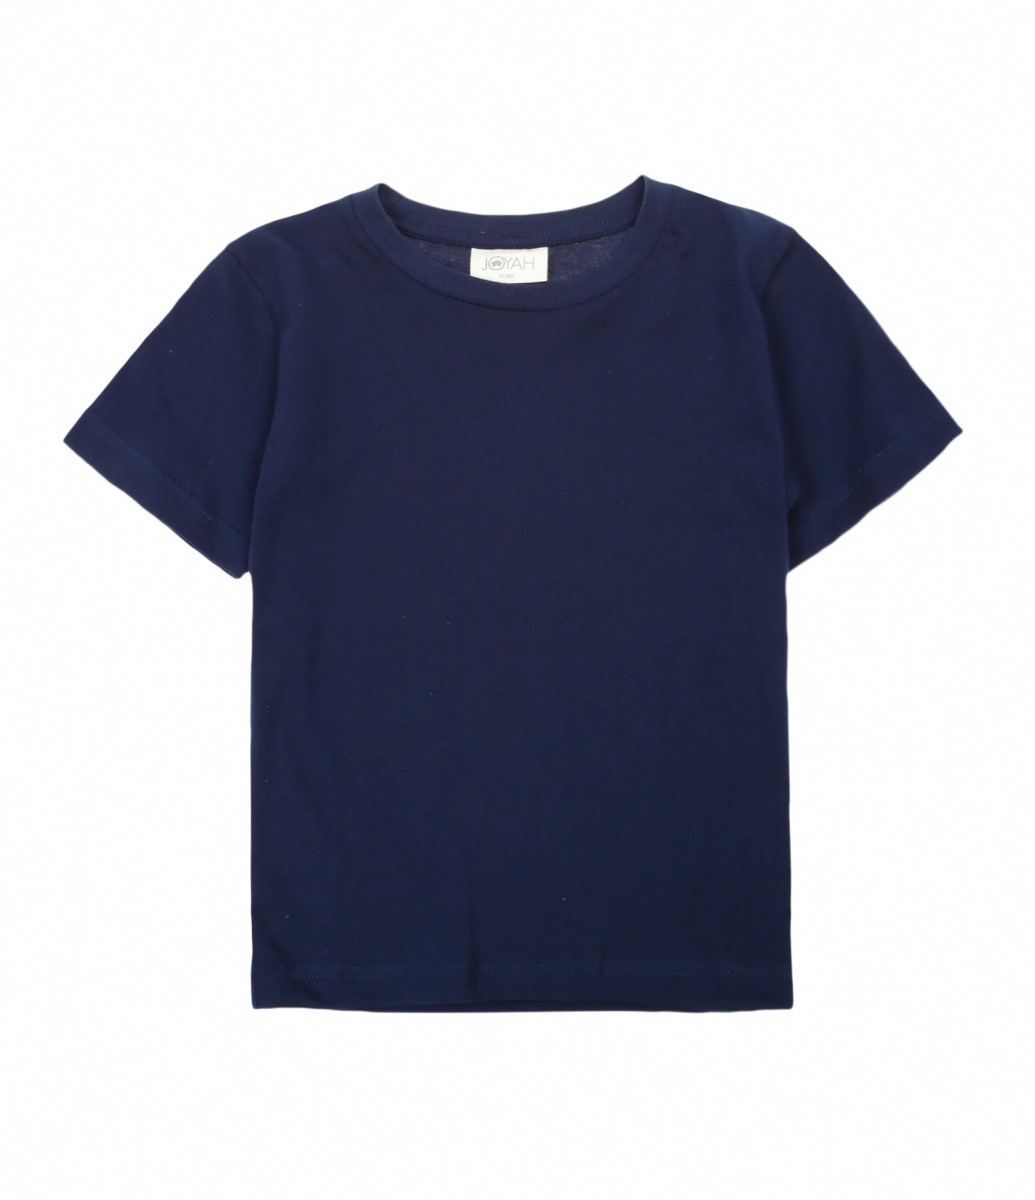 2d14f73830d Kids T-shirt in Organic Cotton - Blue Navy